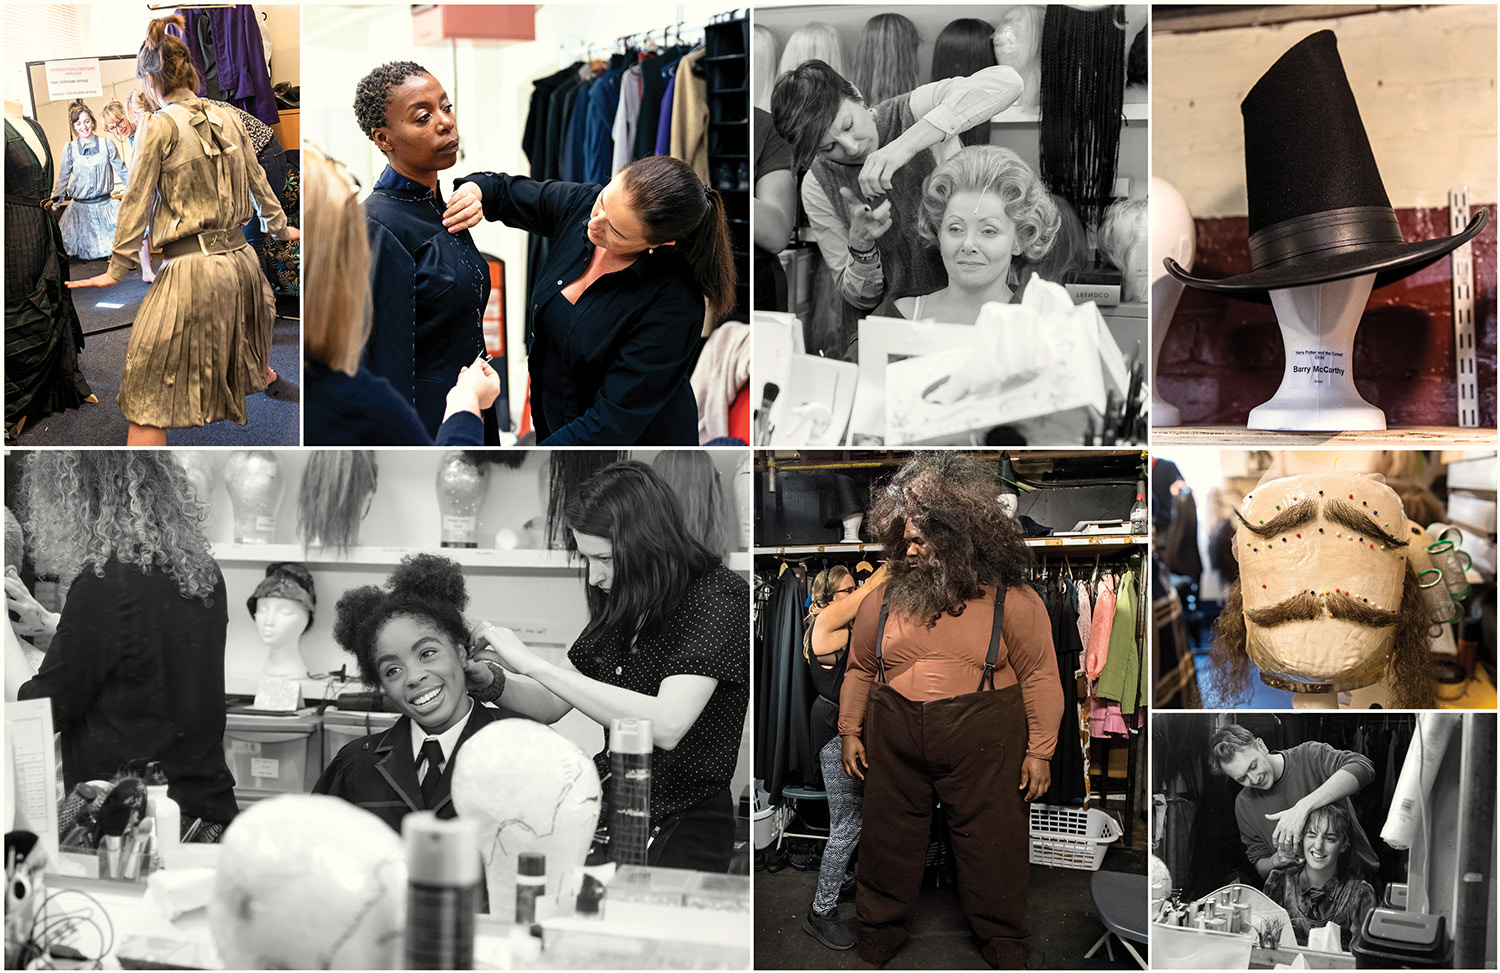 Backstage shots ('Cursed Child: The Journey' book)